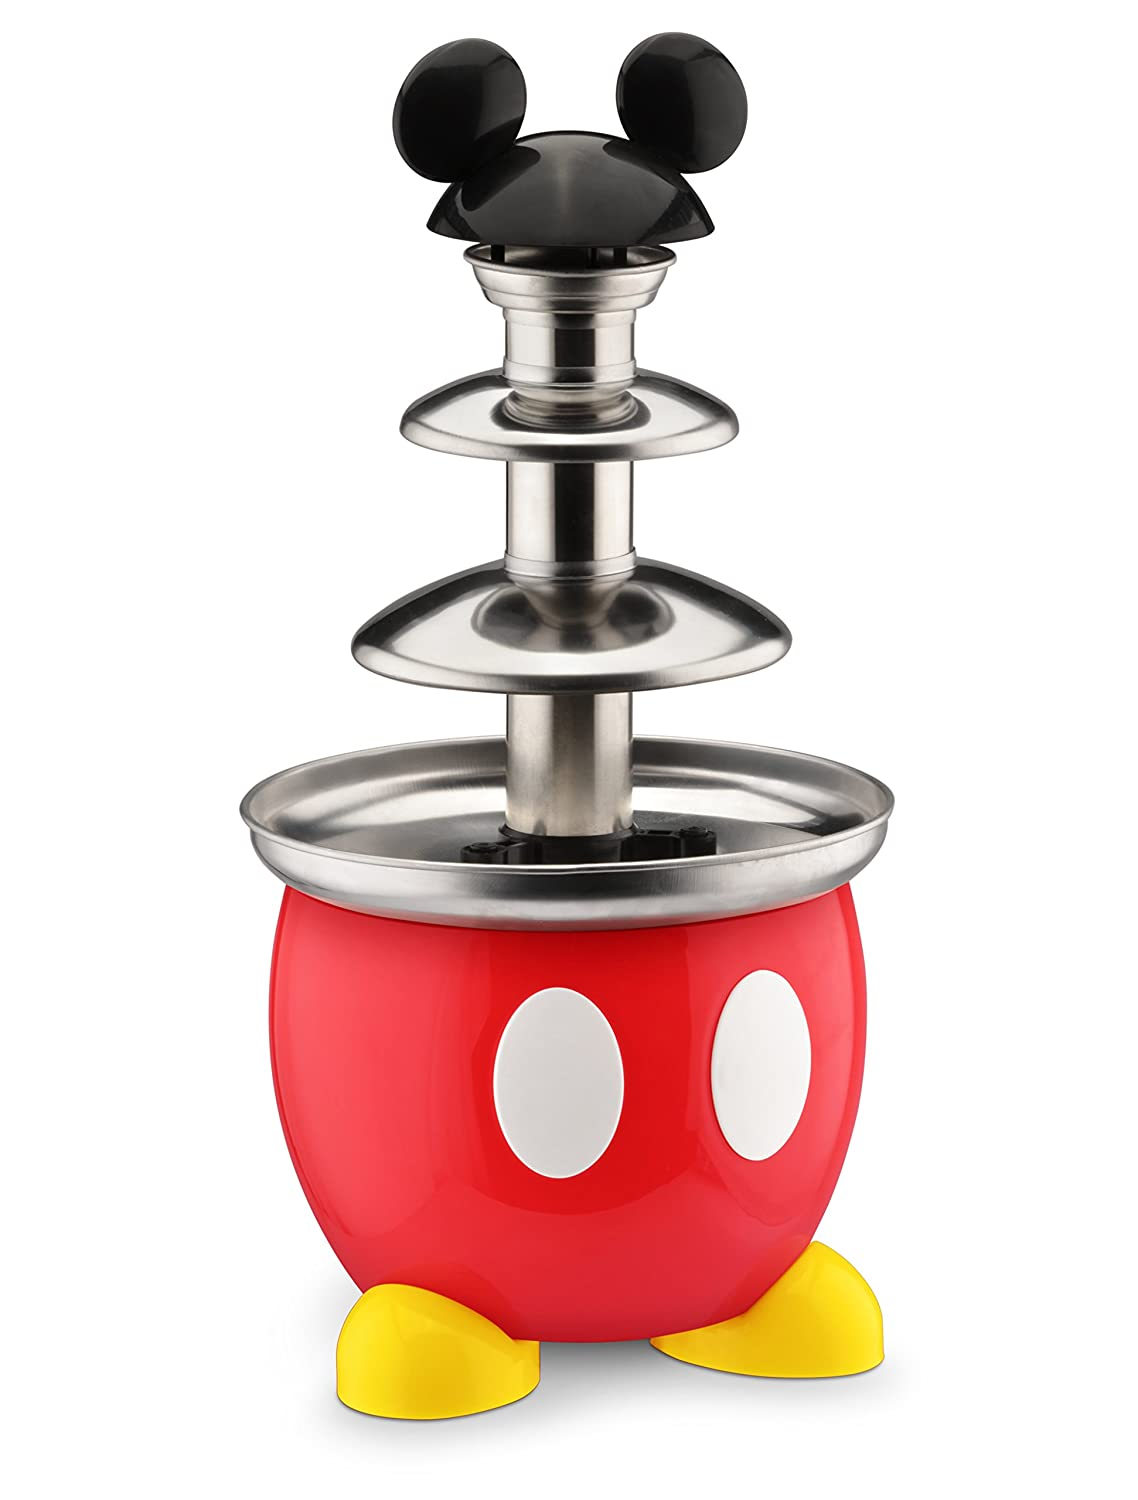 Mickey Mouse Kitchen Appliances Amazoncom Disney Dcm 50 Mickey Mouse Chocolate Fountain Red